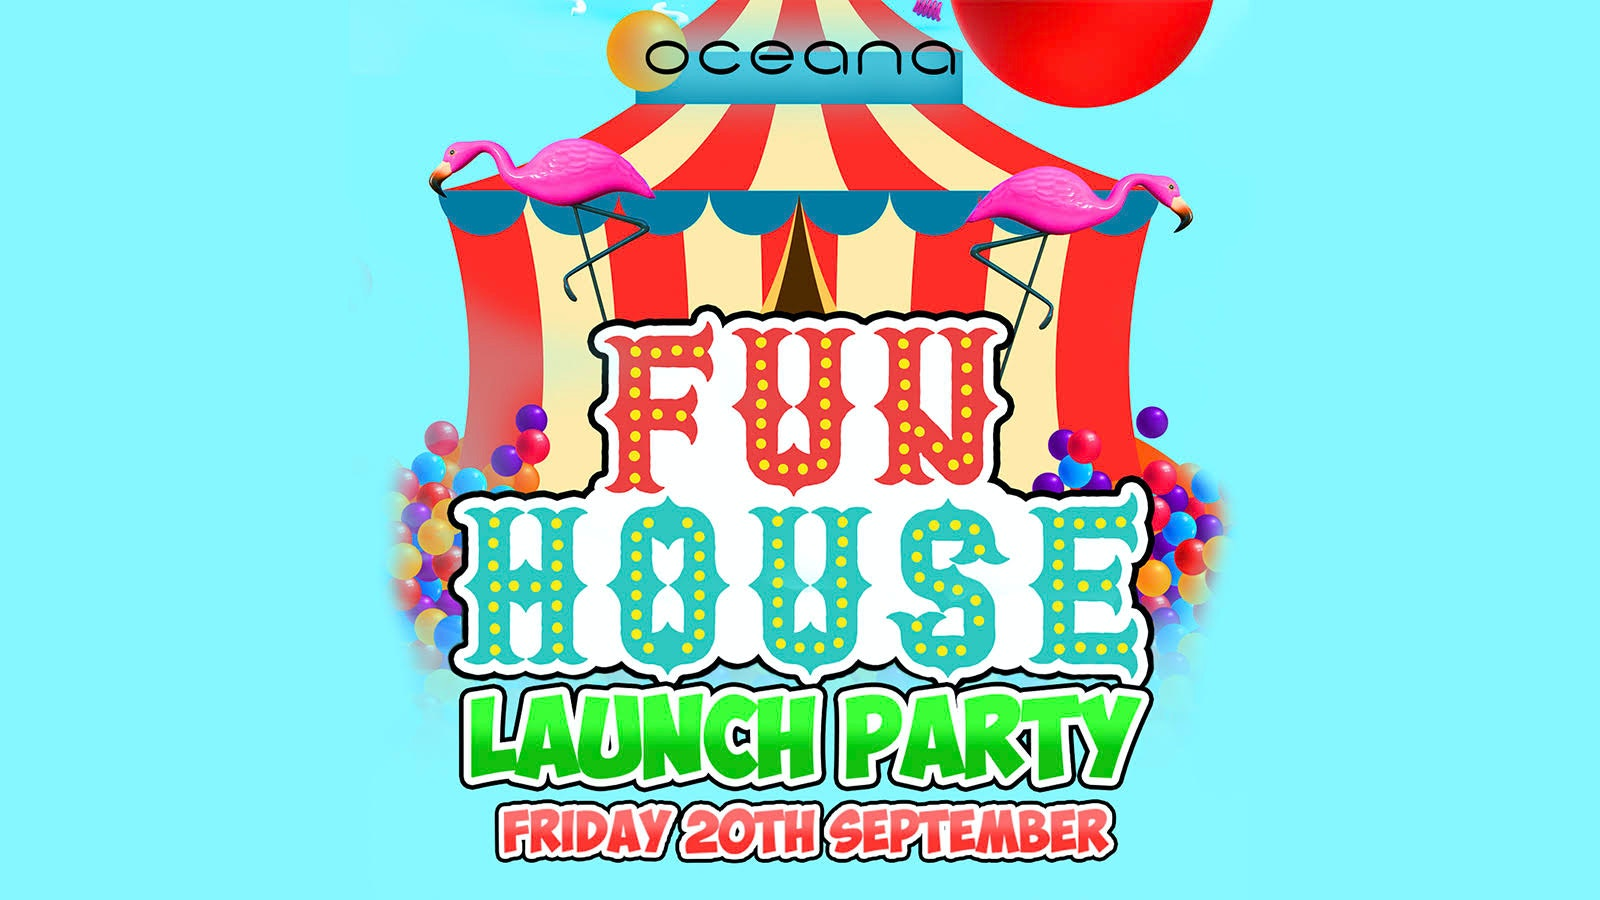 Freshers Fun House : The Grand Launch Party! /// Solent Freshers 2019